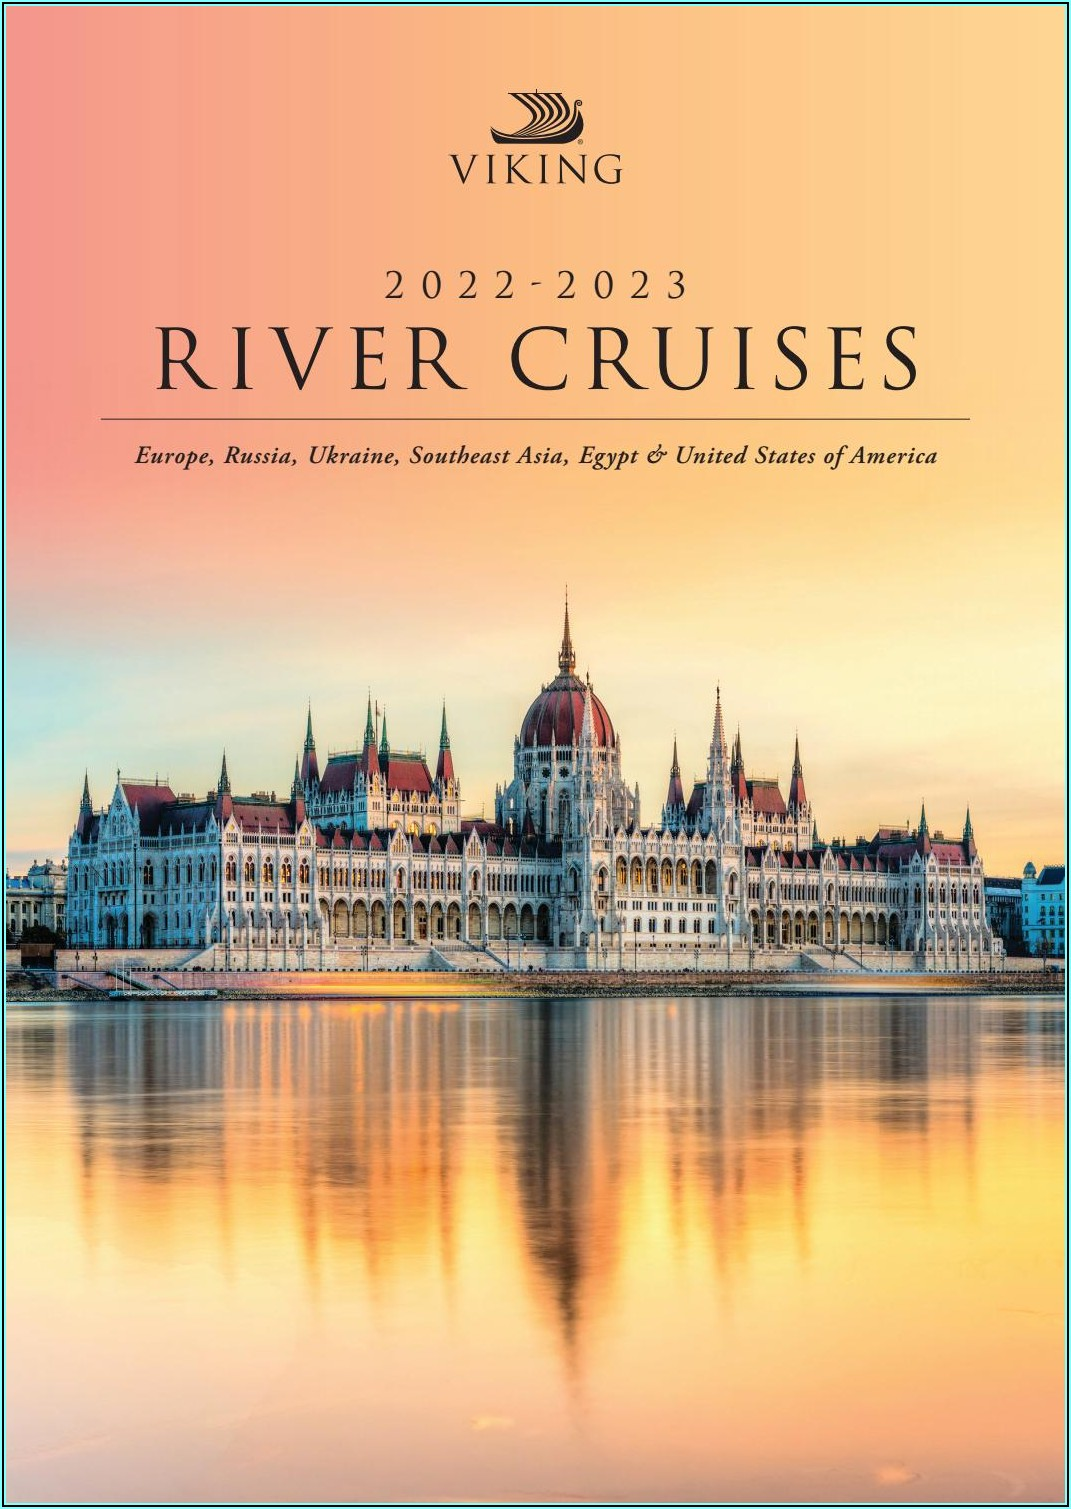 Viking River Cruises 2022 Brochure